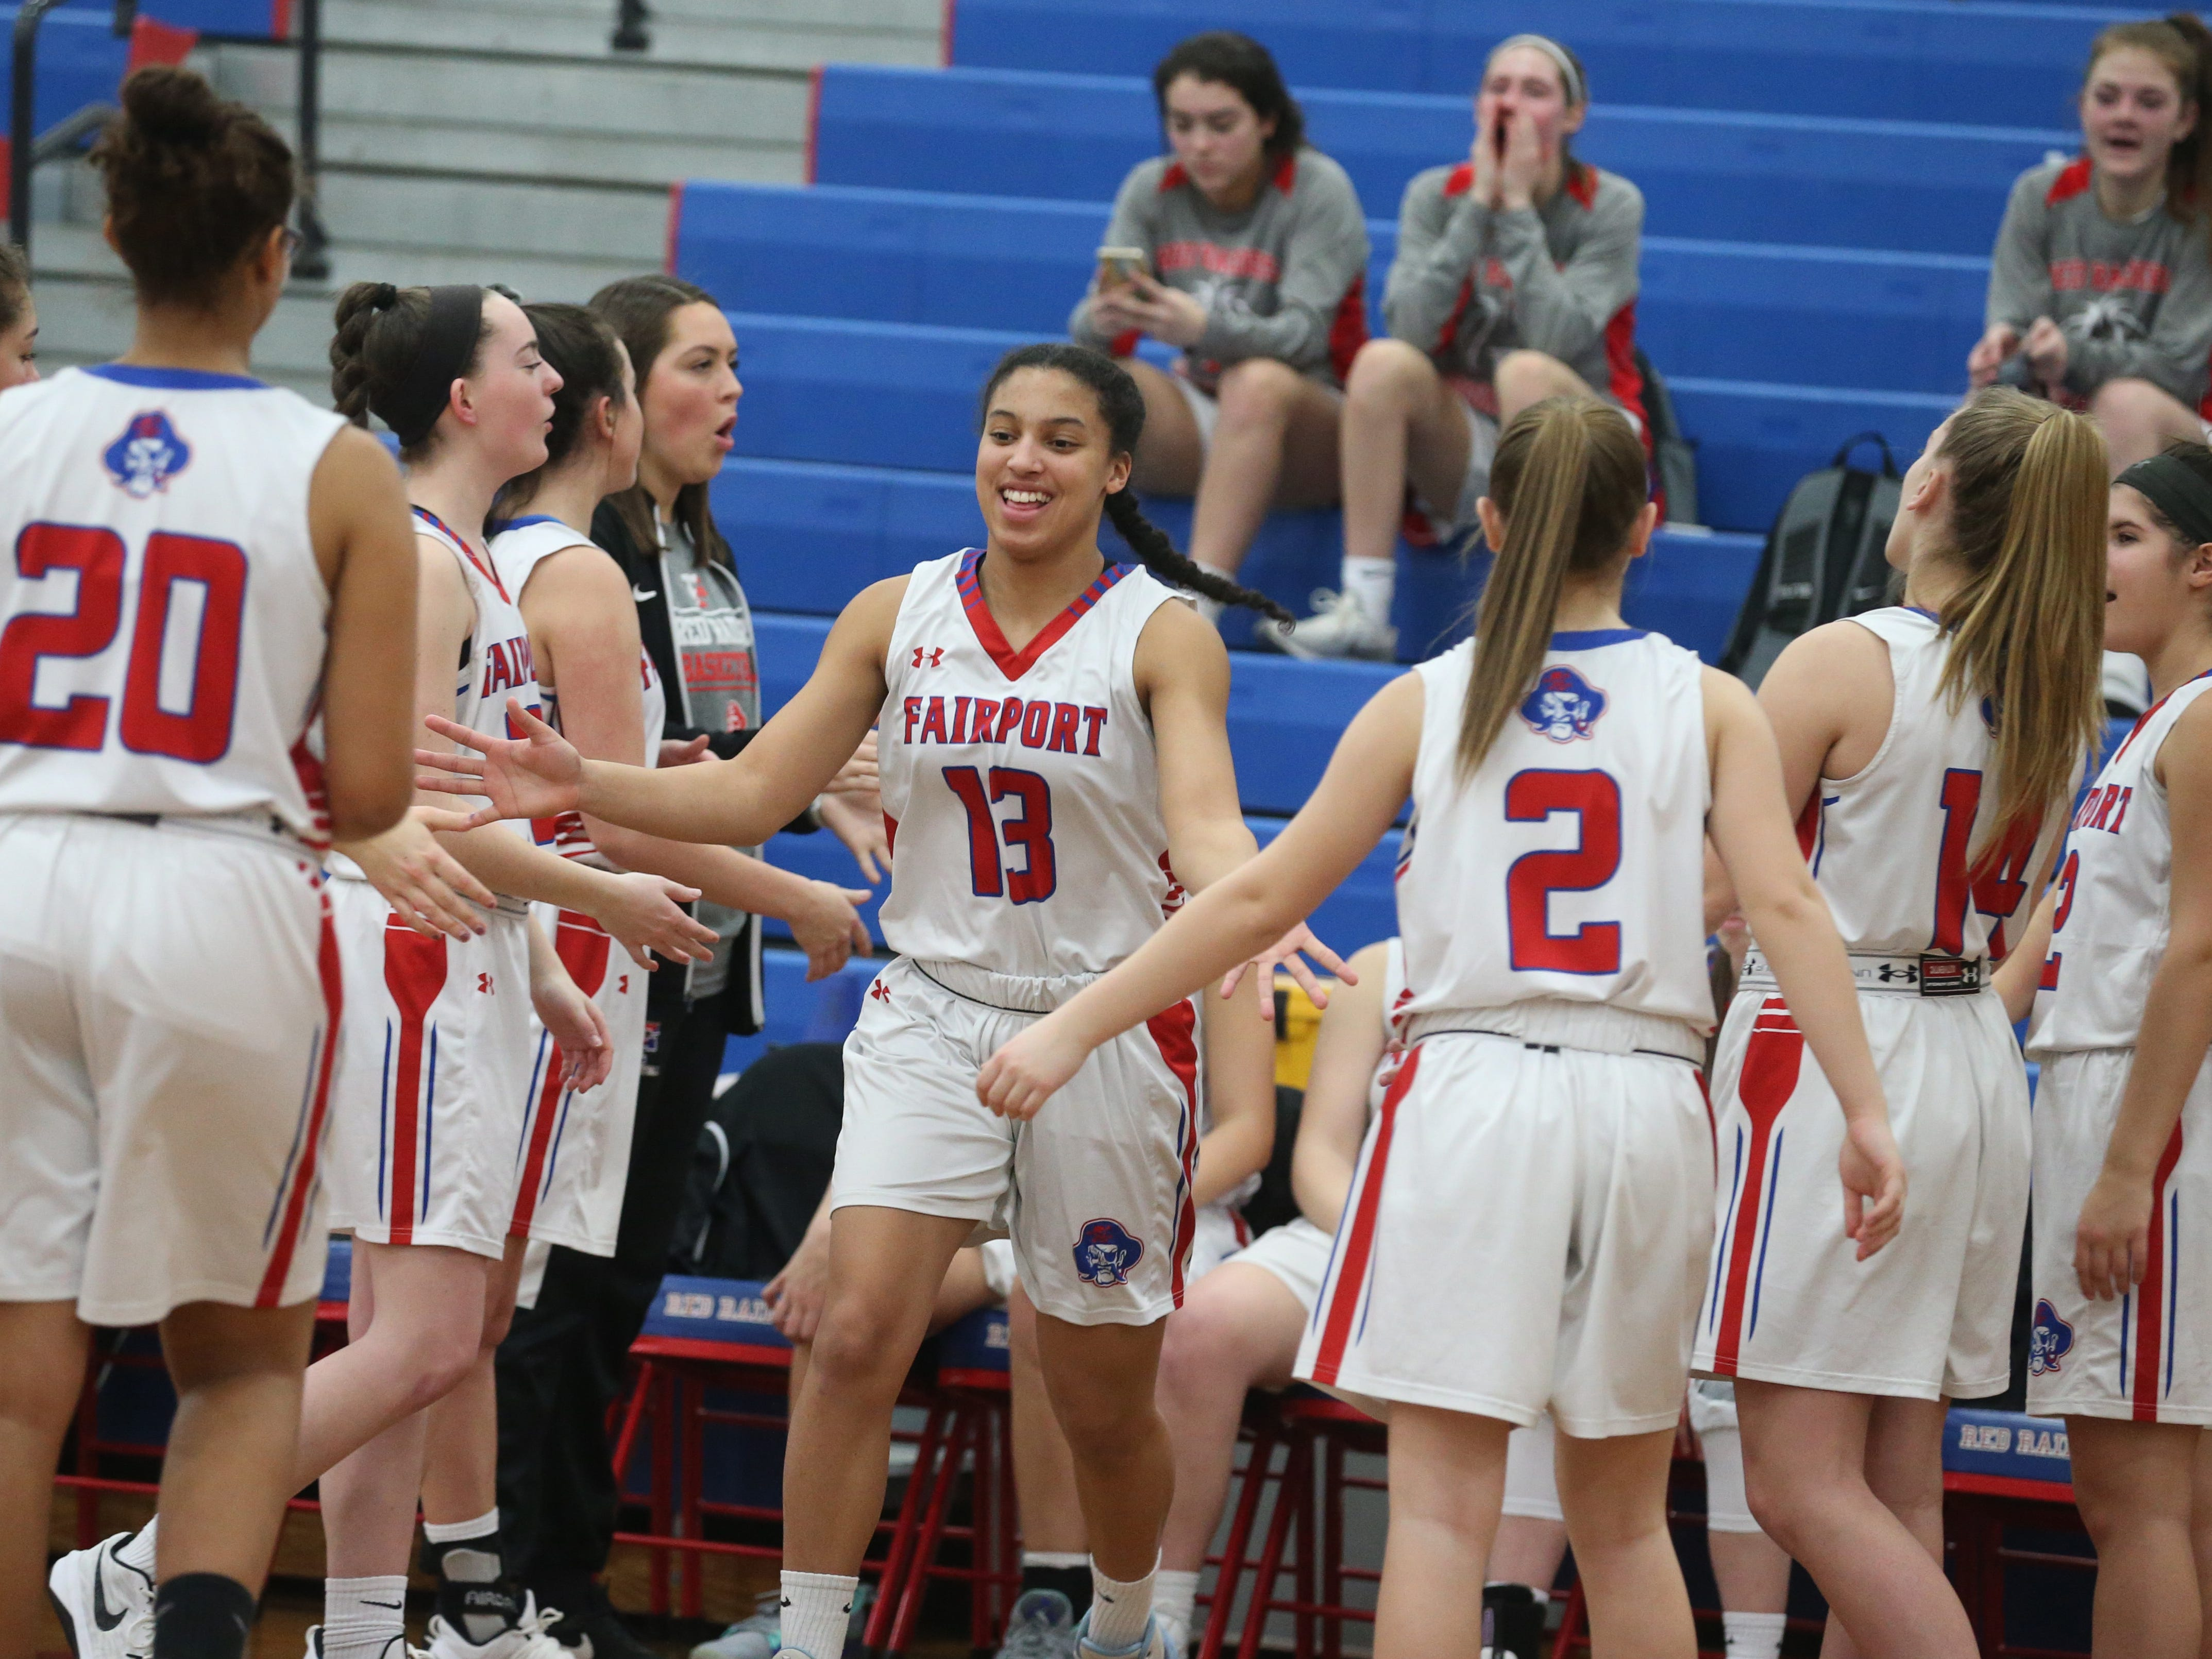 Fairport guard Ella Meabon gets high-fives from teammates as she is introduced with the starters.